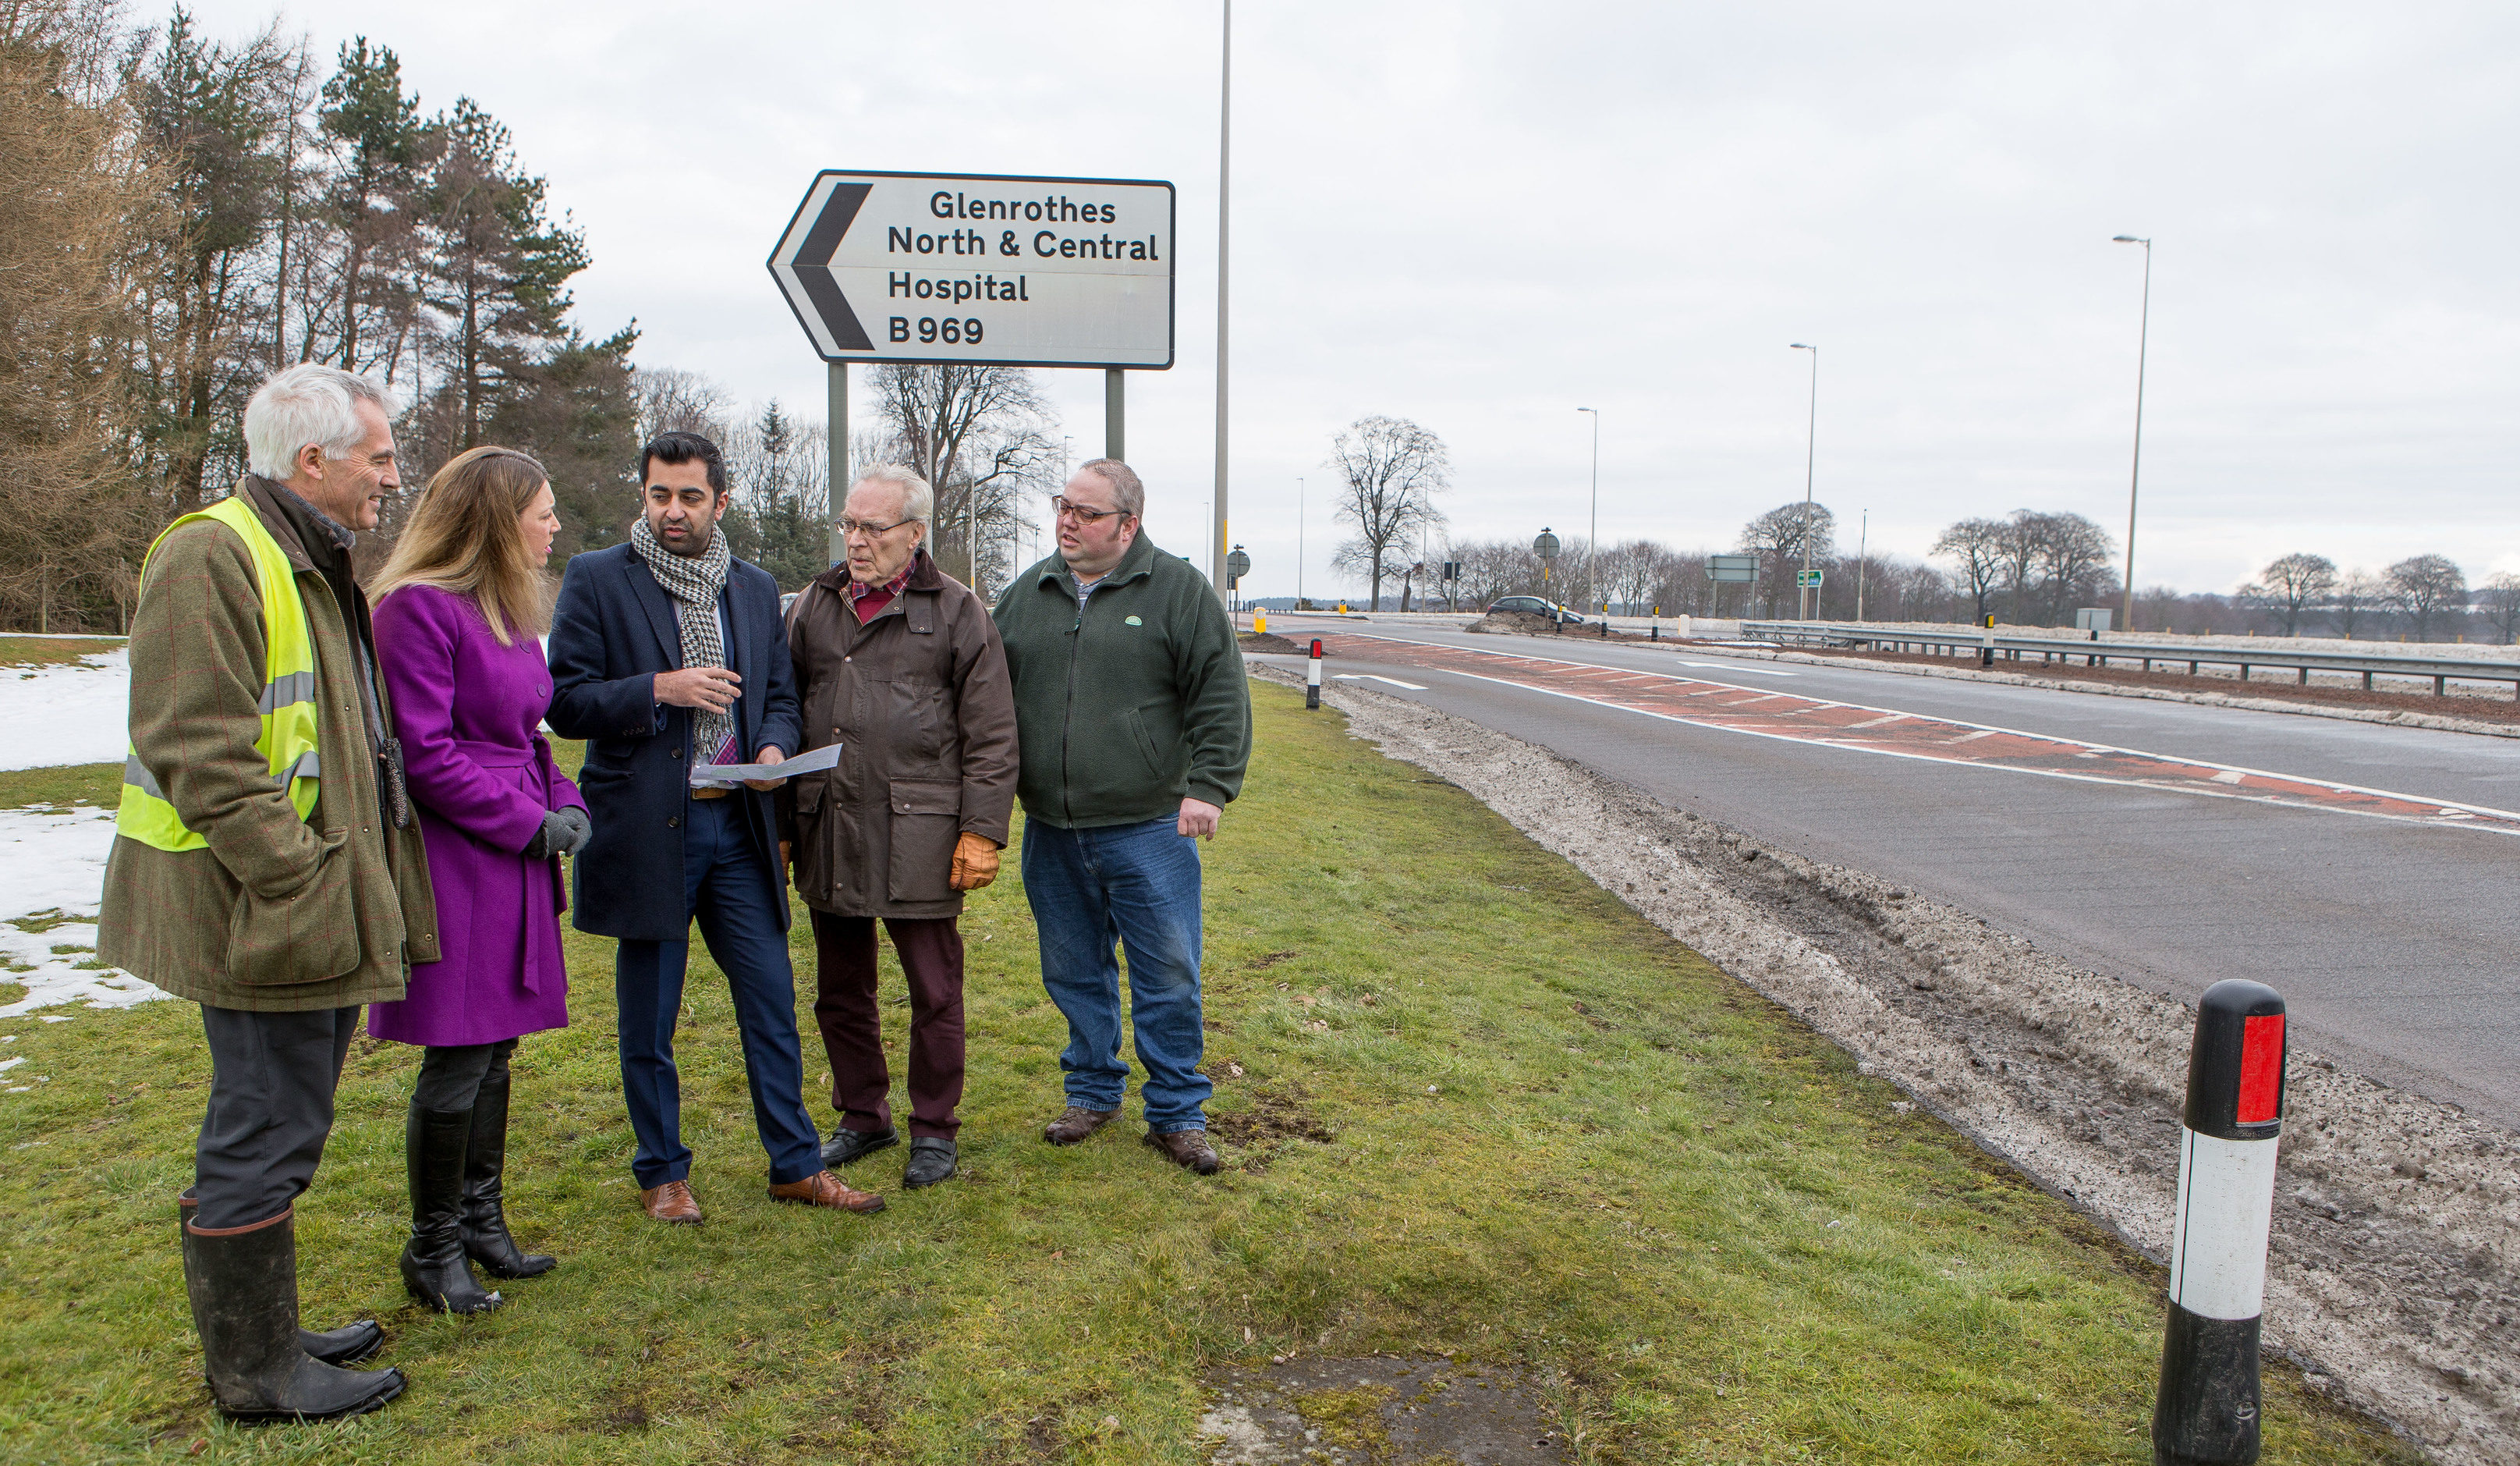 Former Transport Minister Humza Yousaf visited the hazards last year